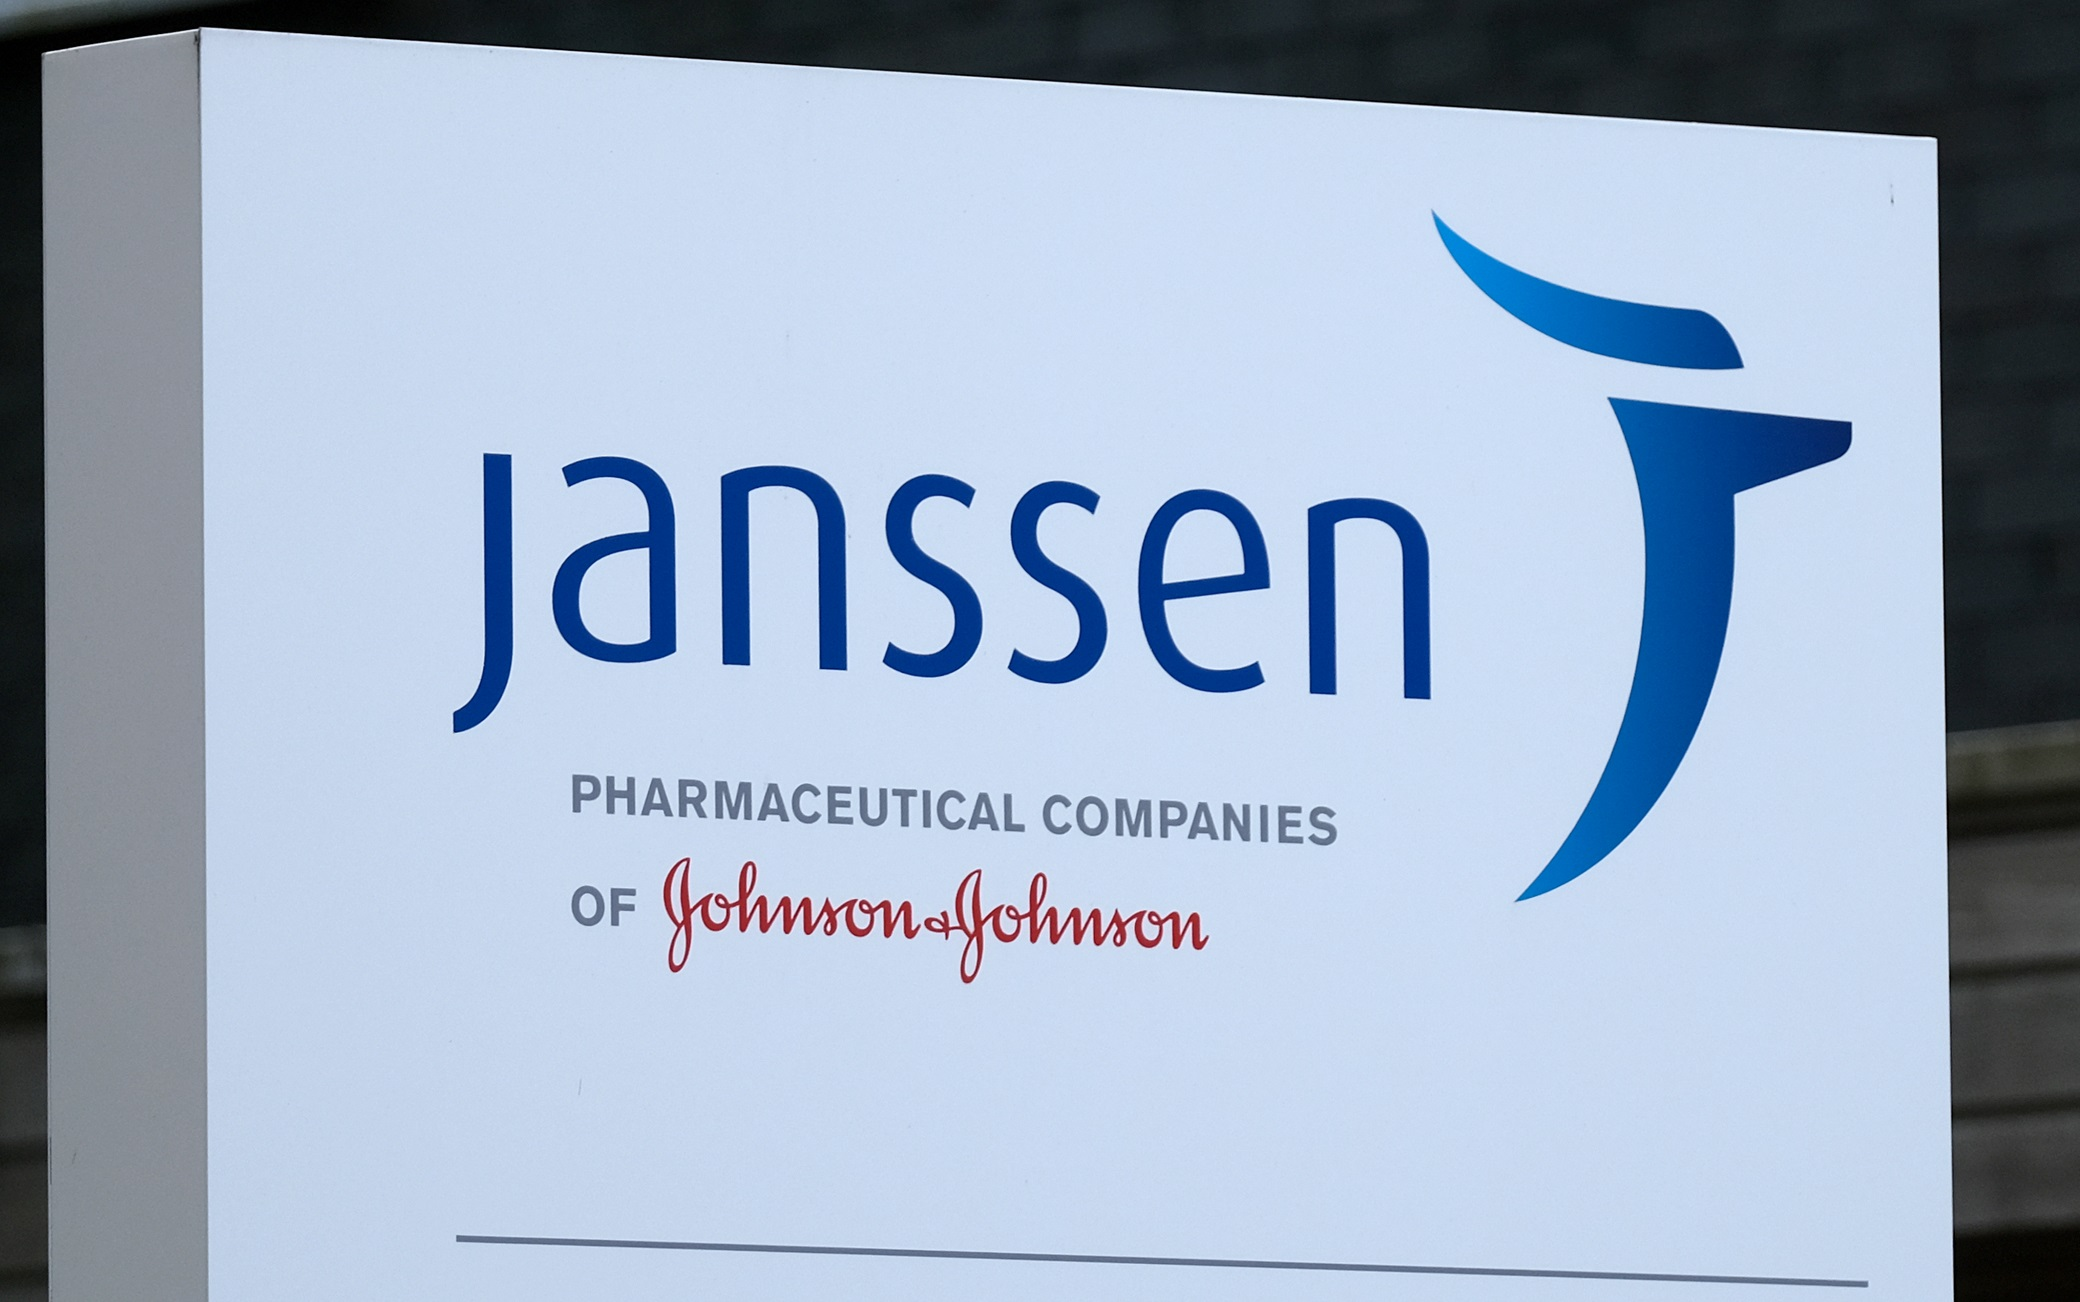 LEIDEN, NETHERLANDS - JUNE 9: A logo of Janssen Pharmaceutical Companies of Johnson & Johnson is pictured outside its facility on June 9, 2020 in Leiden, Netherlands.  (Photo by Yuriko Nakao/Getty Images)